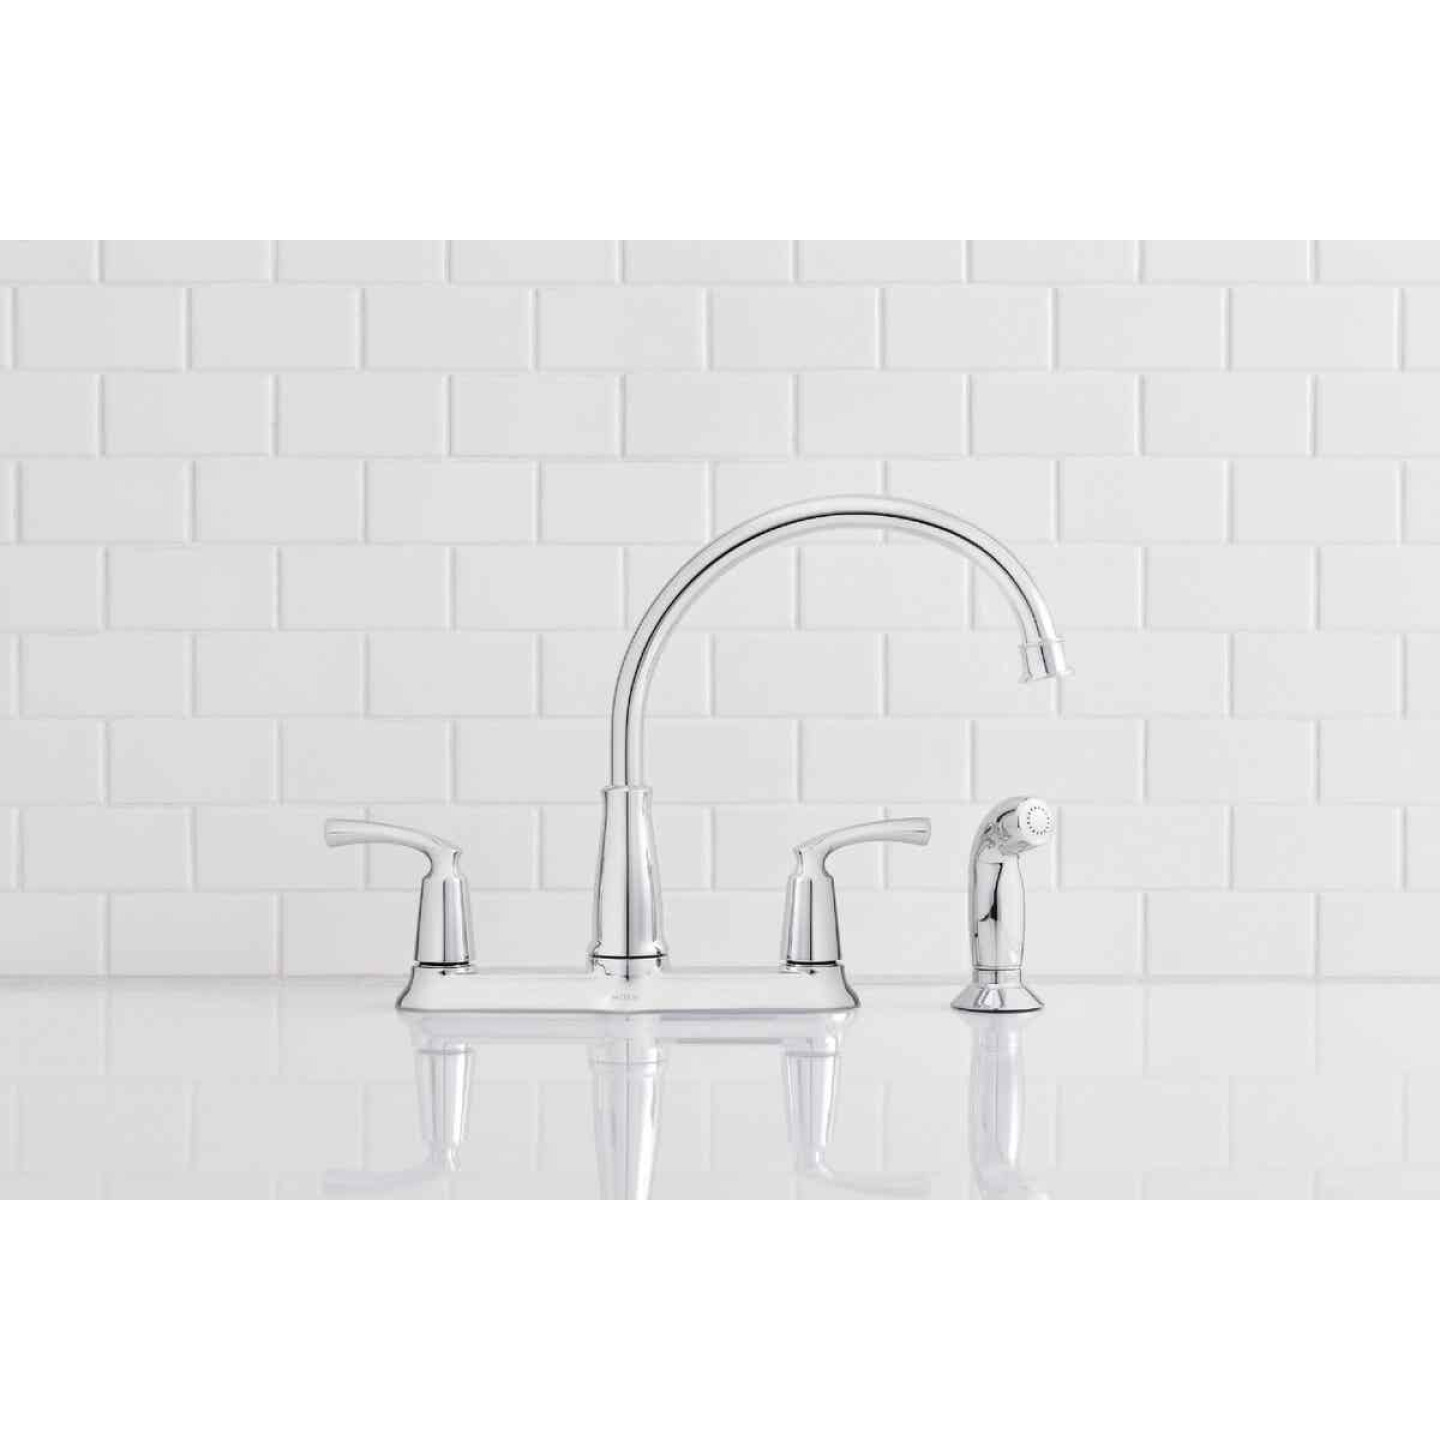 Moen Bexley Dual Handle Lever Kitchen Faucet with Side Spray, Chrome Image 2